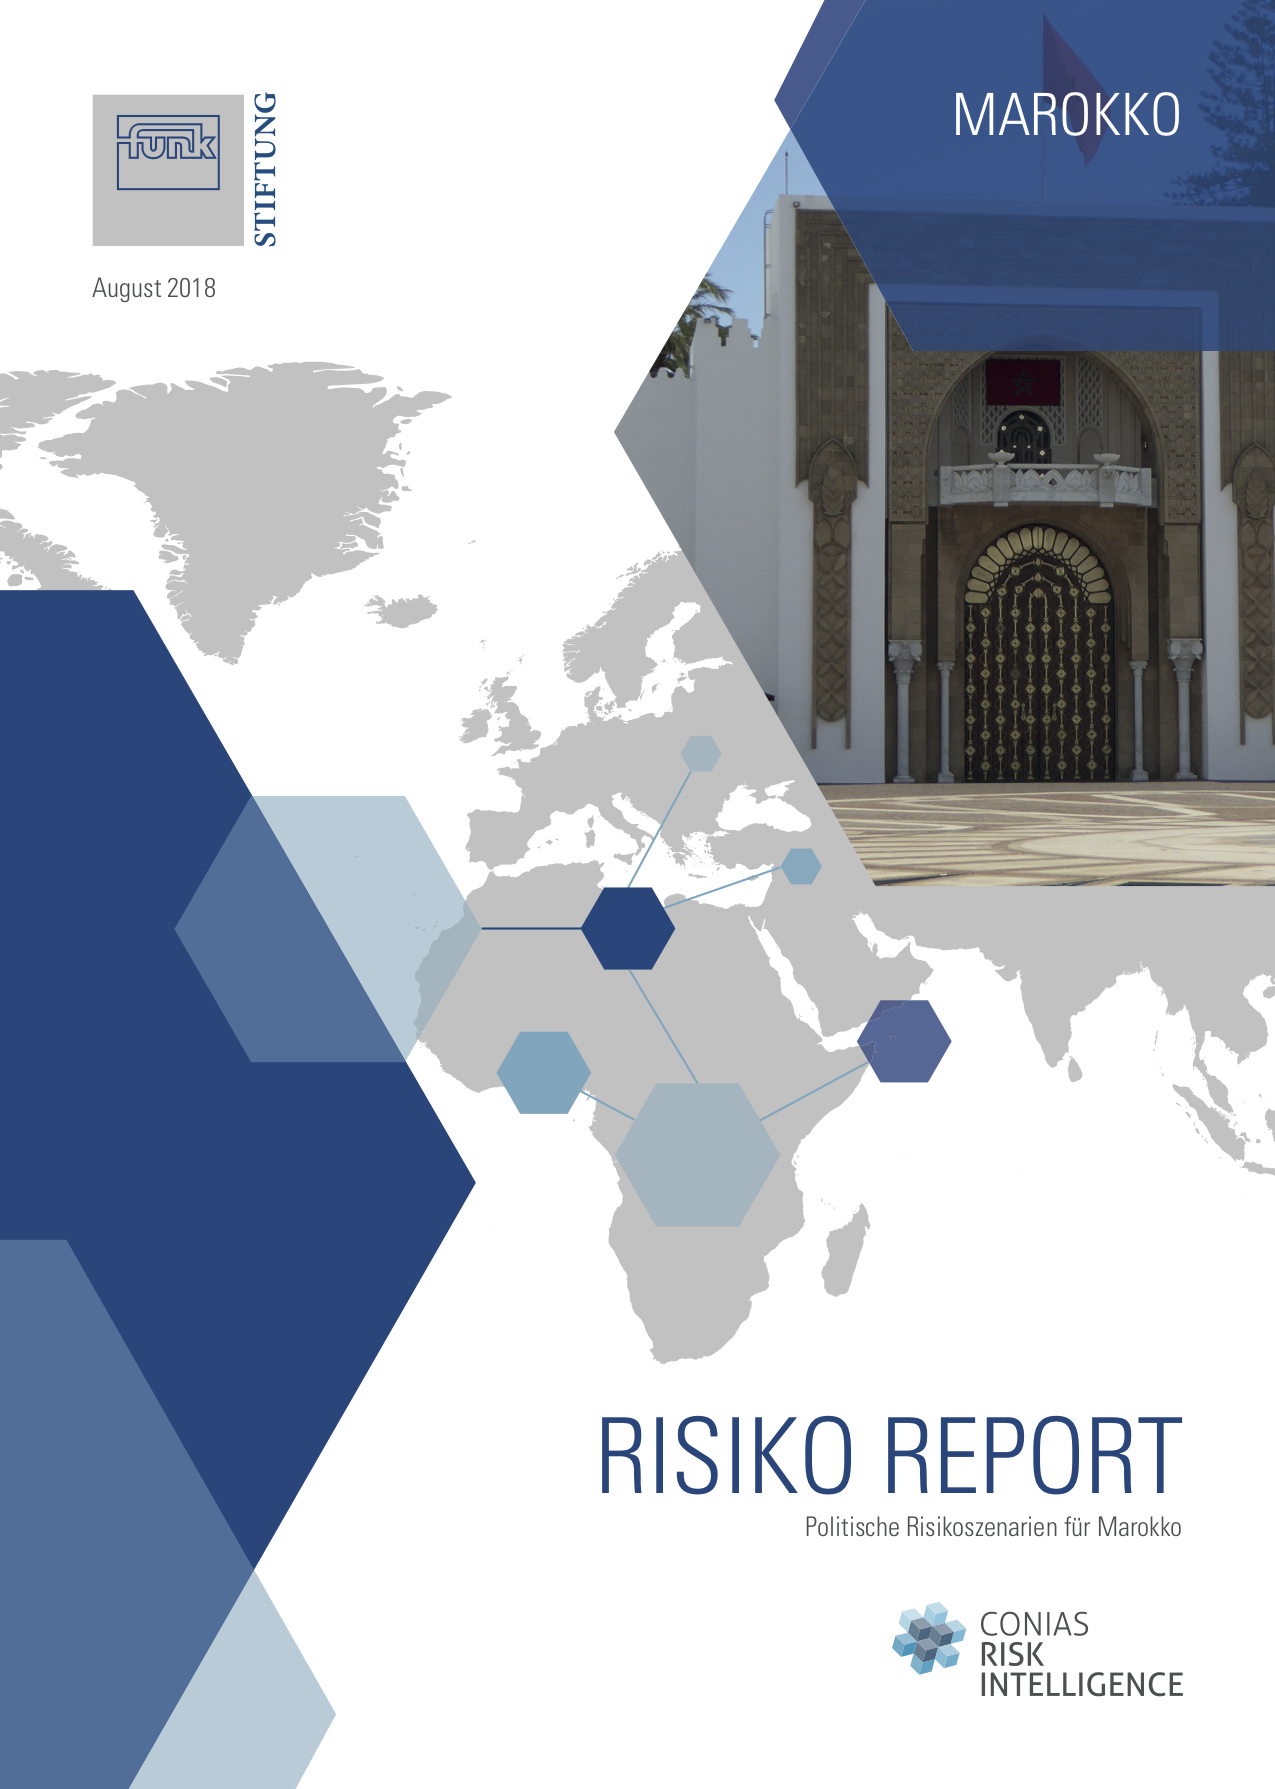 Risiko Report Marokko